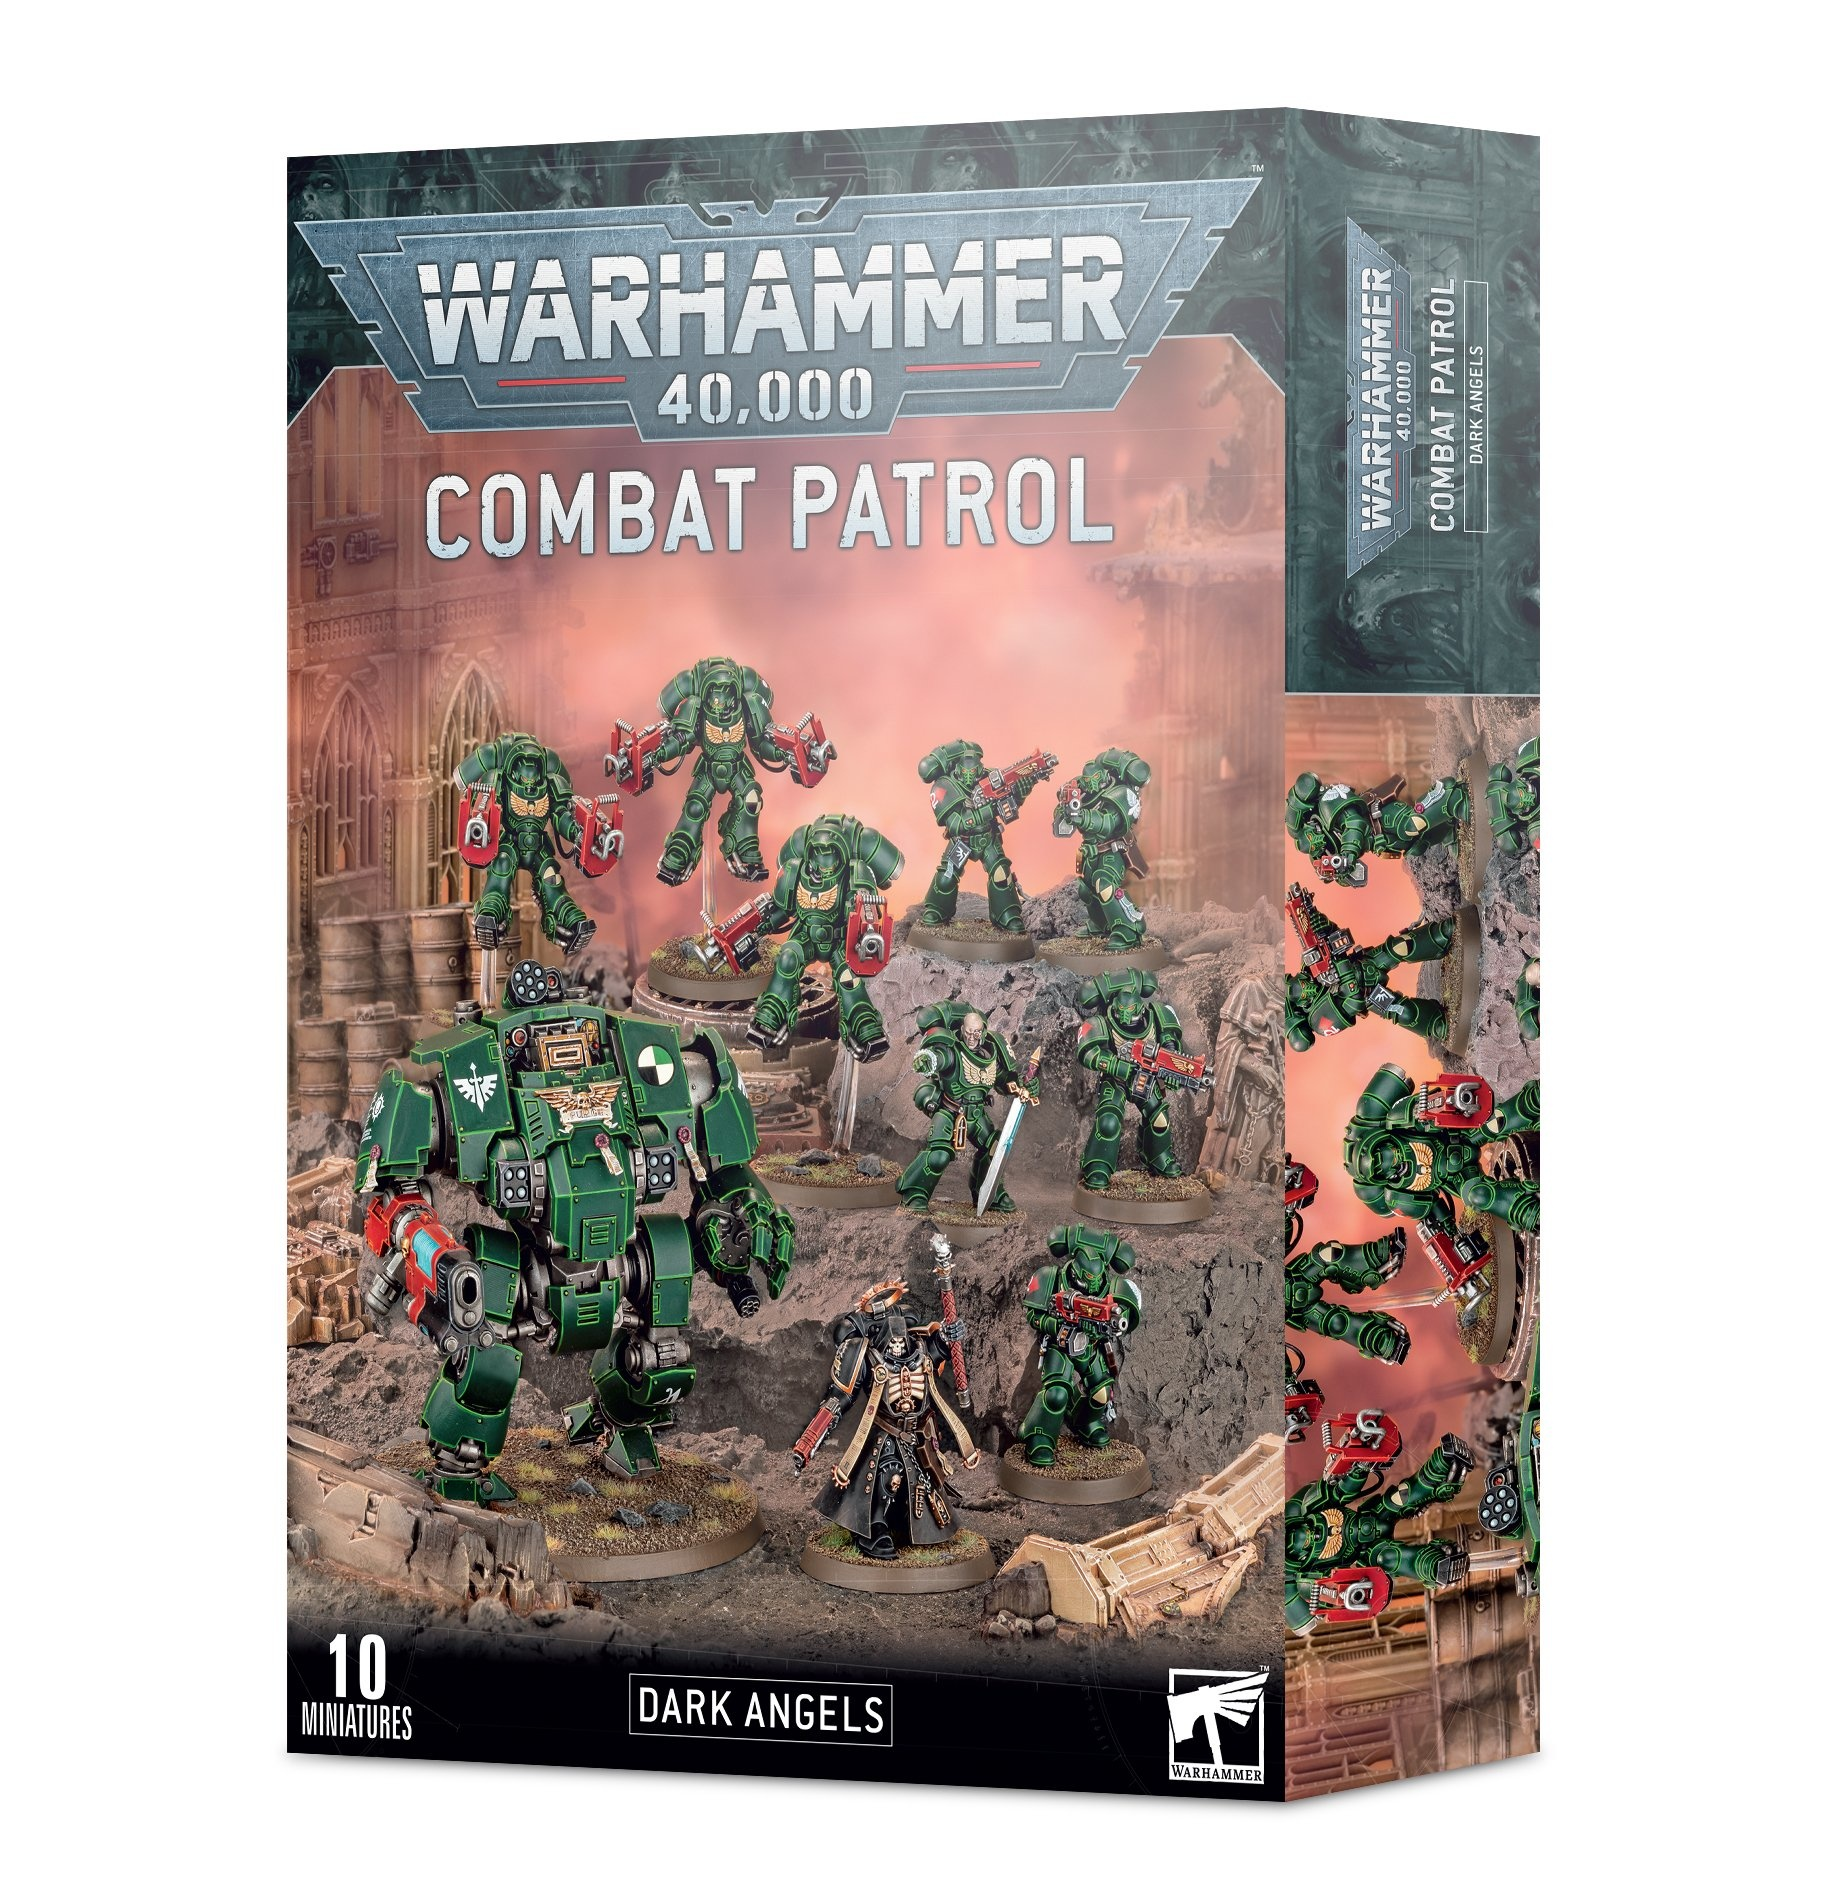 Games Workshop new releases!